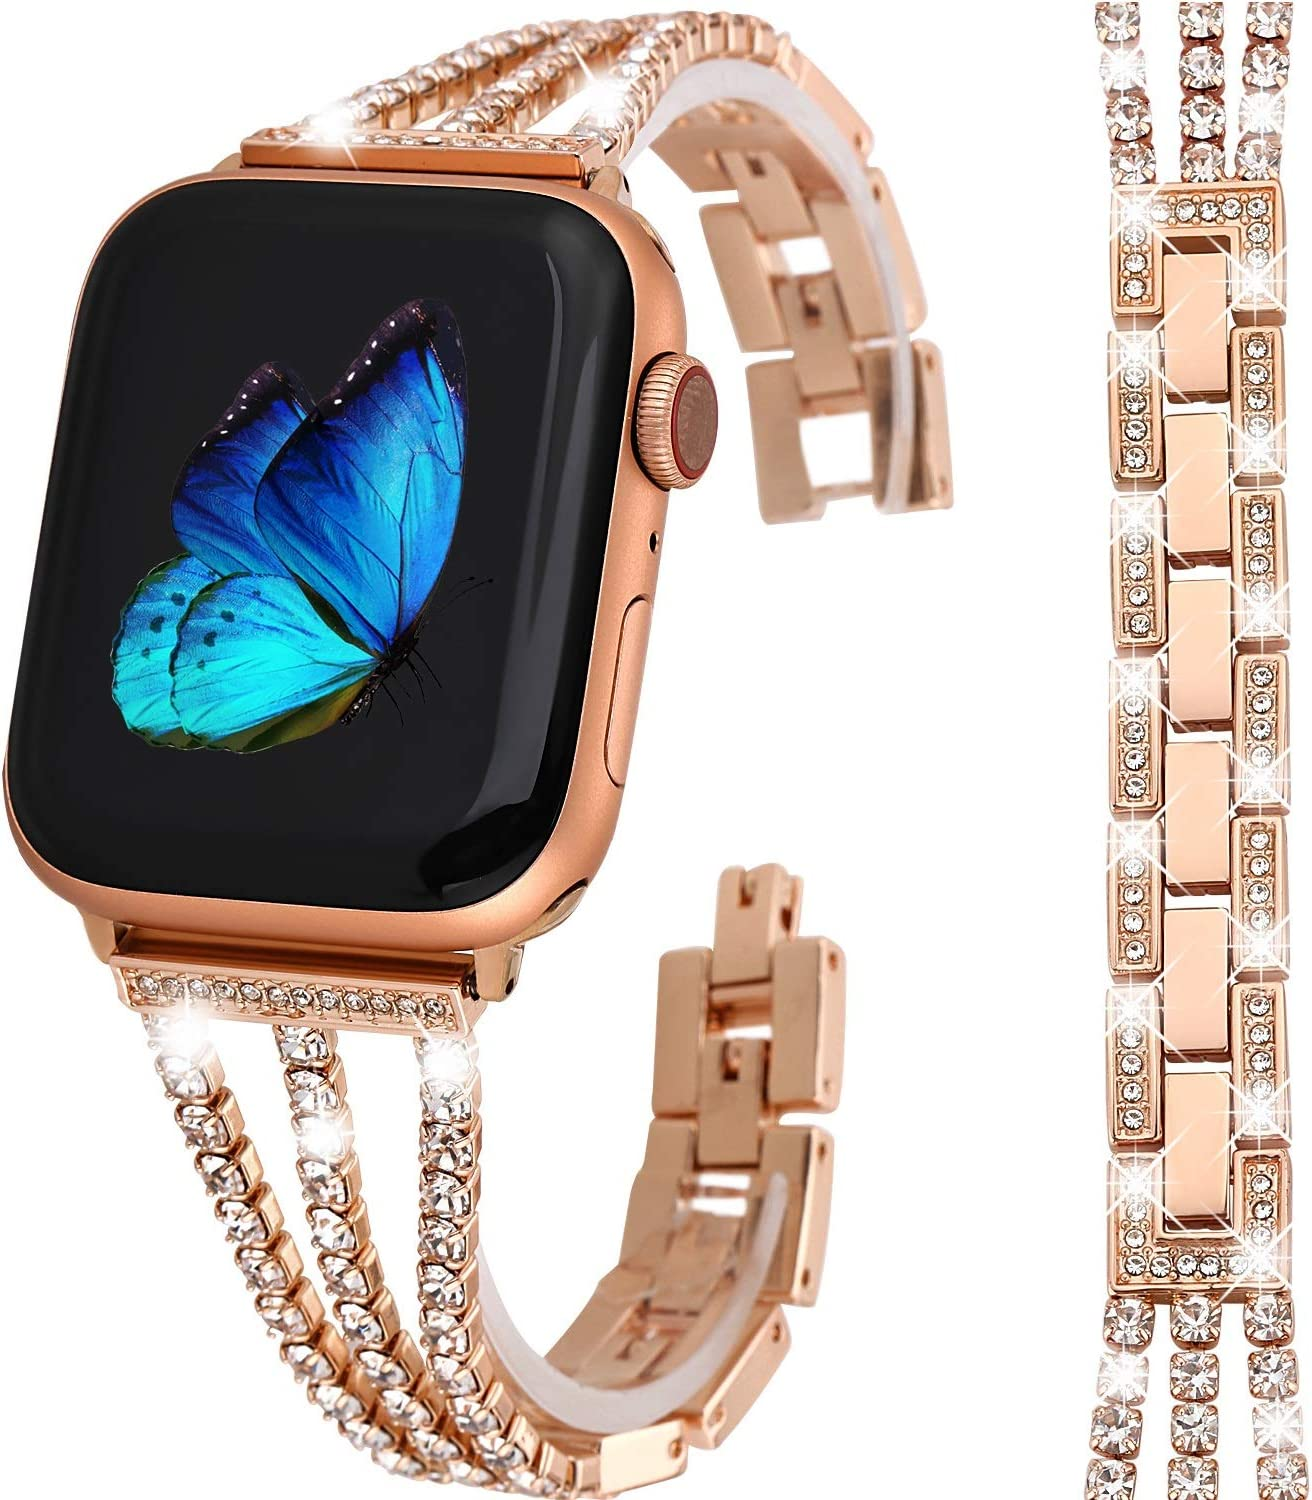 Greaciary Bling Band Compatible for Apple Watch Band 38mm/40mm Rose Gold Jewelry Replacement Metal Wristband Strap Women Girls compatible for iWatch Series 5/4/3/2/1 RG